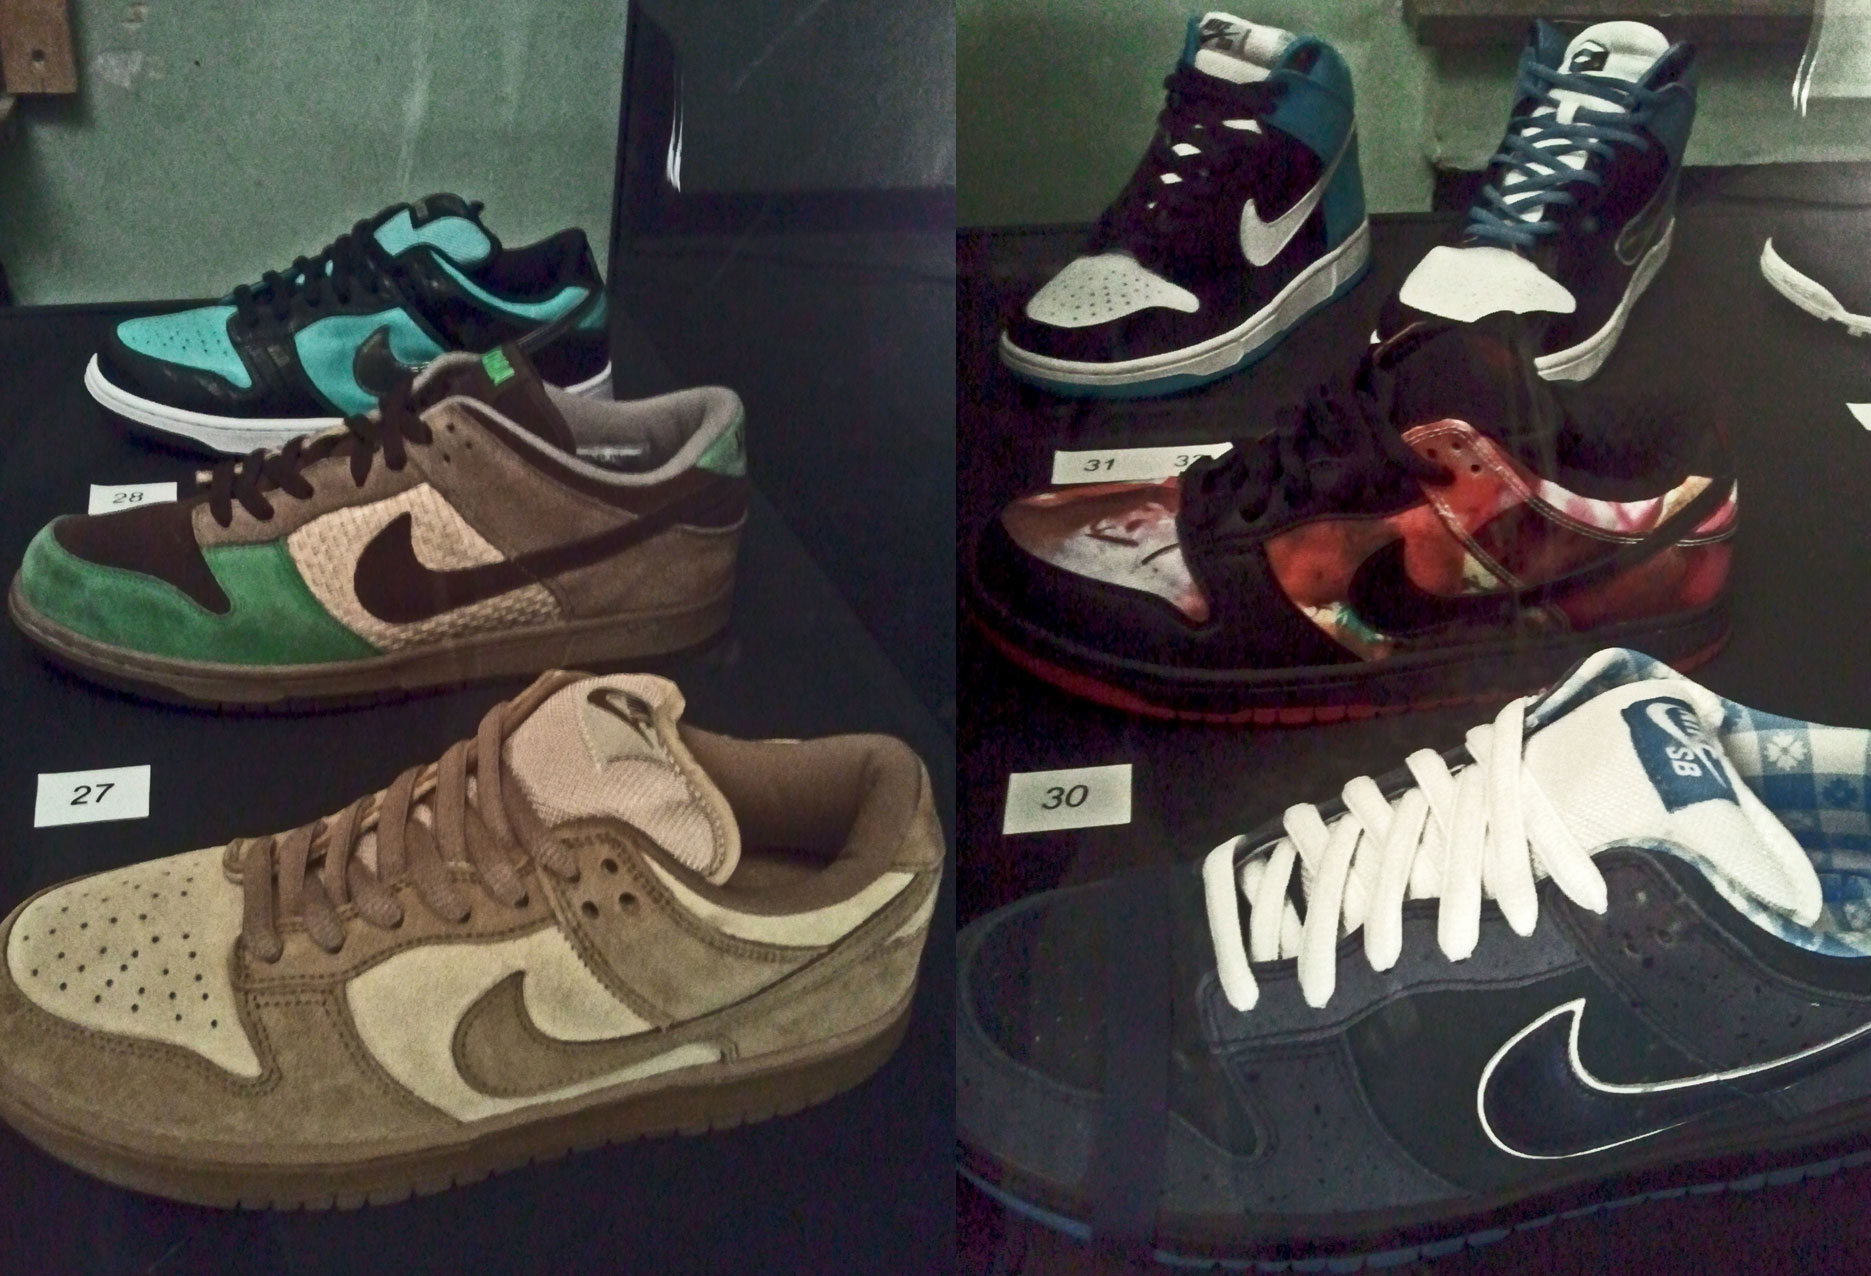 Dunk Low Pro SB Reese Forbes, Dunk Low Kicks Hawaii Aloha, Dunk Low Pro SB Tiffany, Dunk Low Pro SB Blue Lobster, Dunk Low Pro SB Pushead, Dunk High Pro SB Send Help